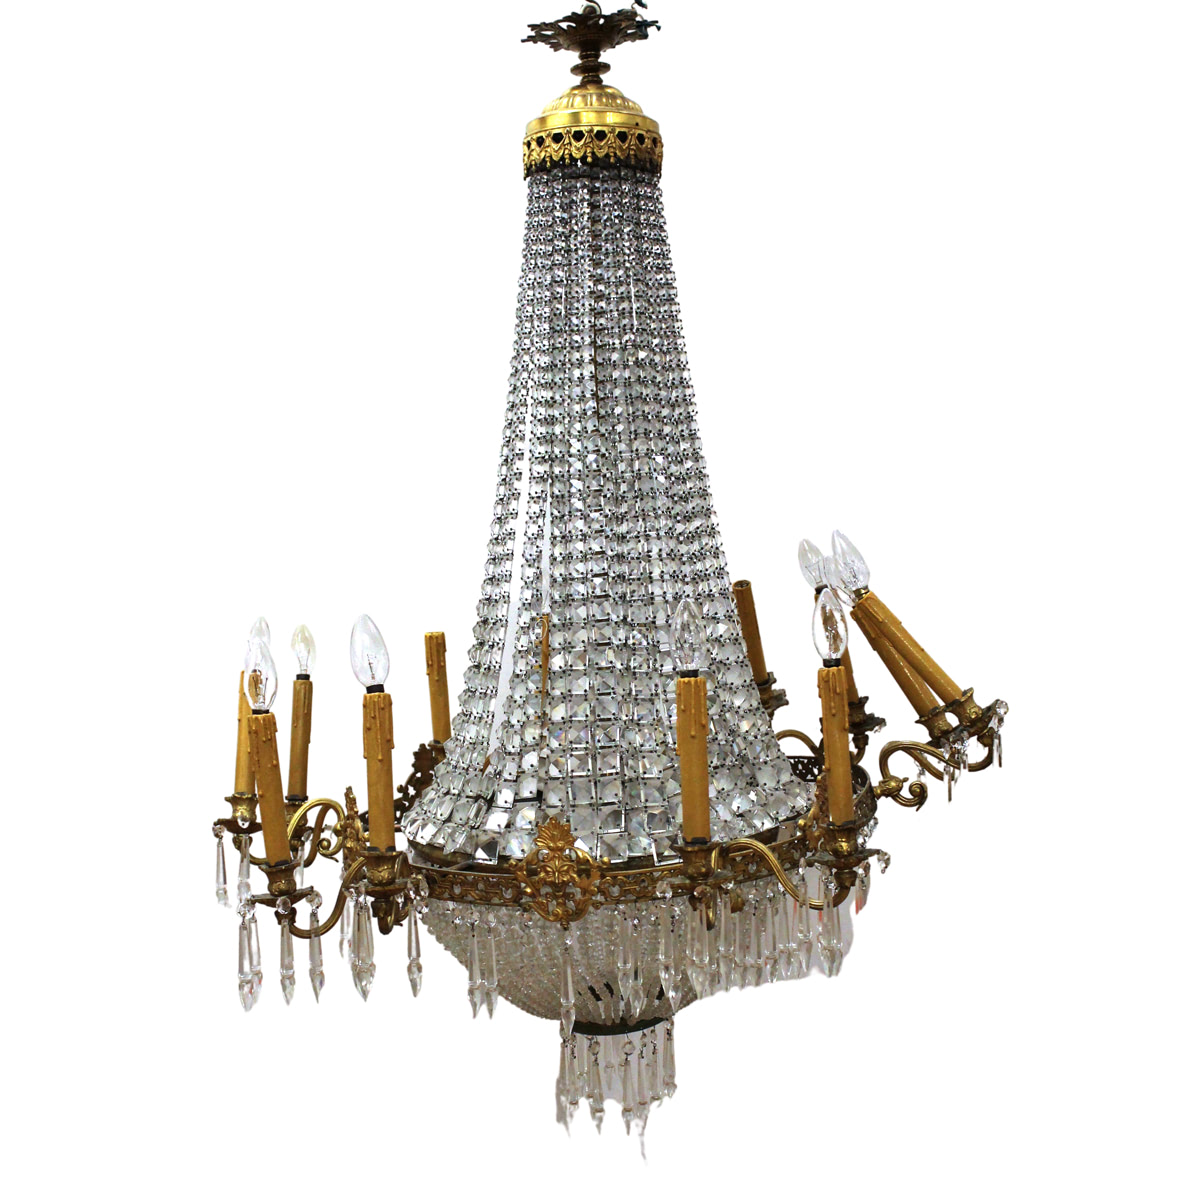 GRANDE LAMPADARIO – GREAT CHANDELIER